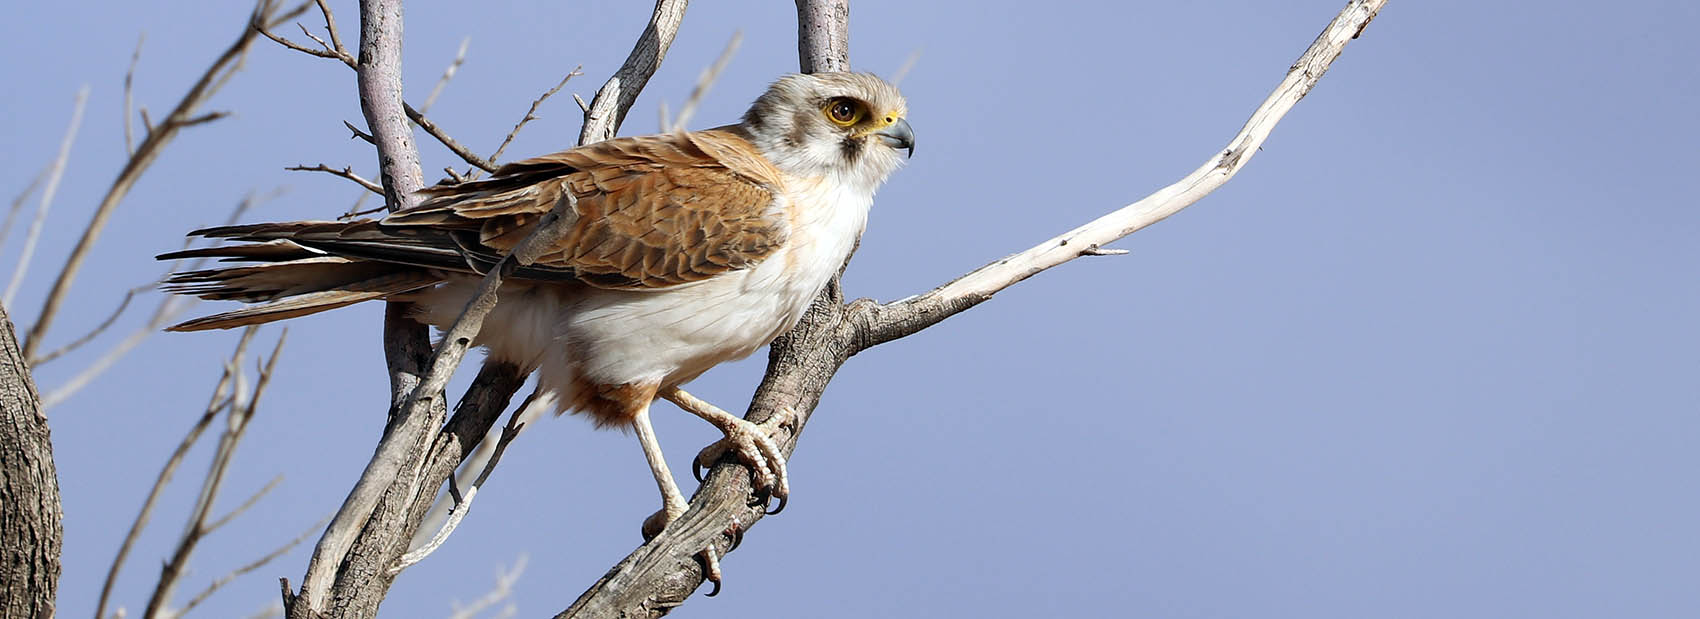 Brown Falcon (image by Damon Ramsey)